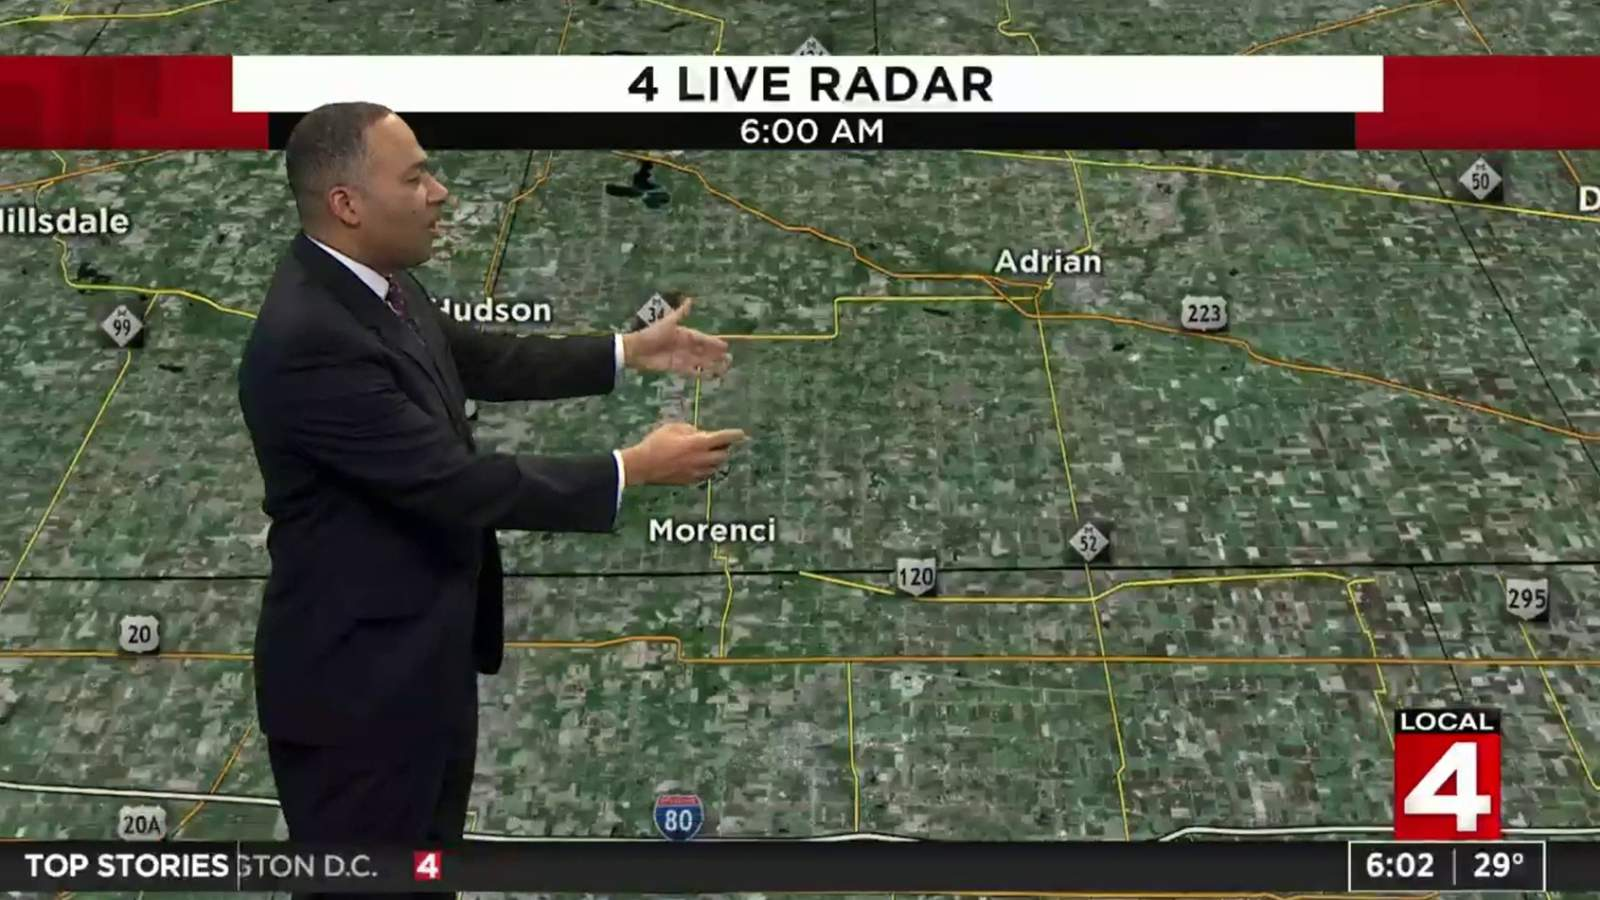 Metro Detroit weather: Winter storm warning issued for most of Southeast Michigan - WDIV ClickOnDetroit